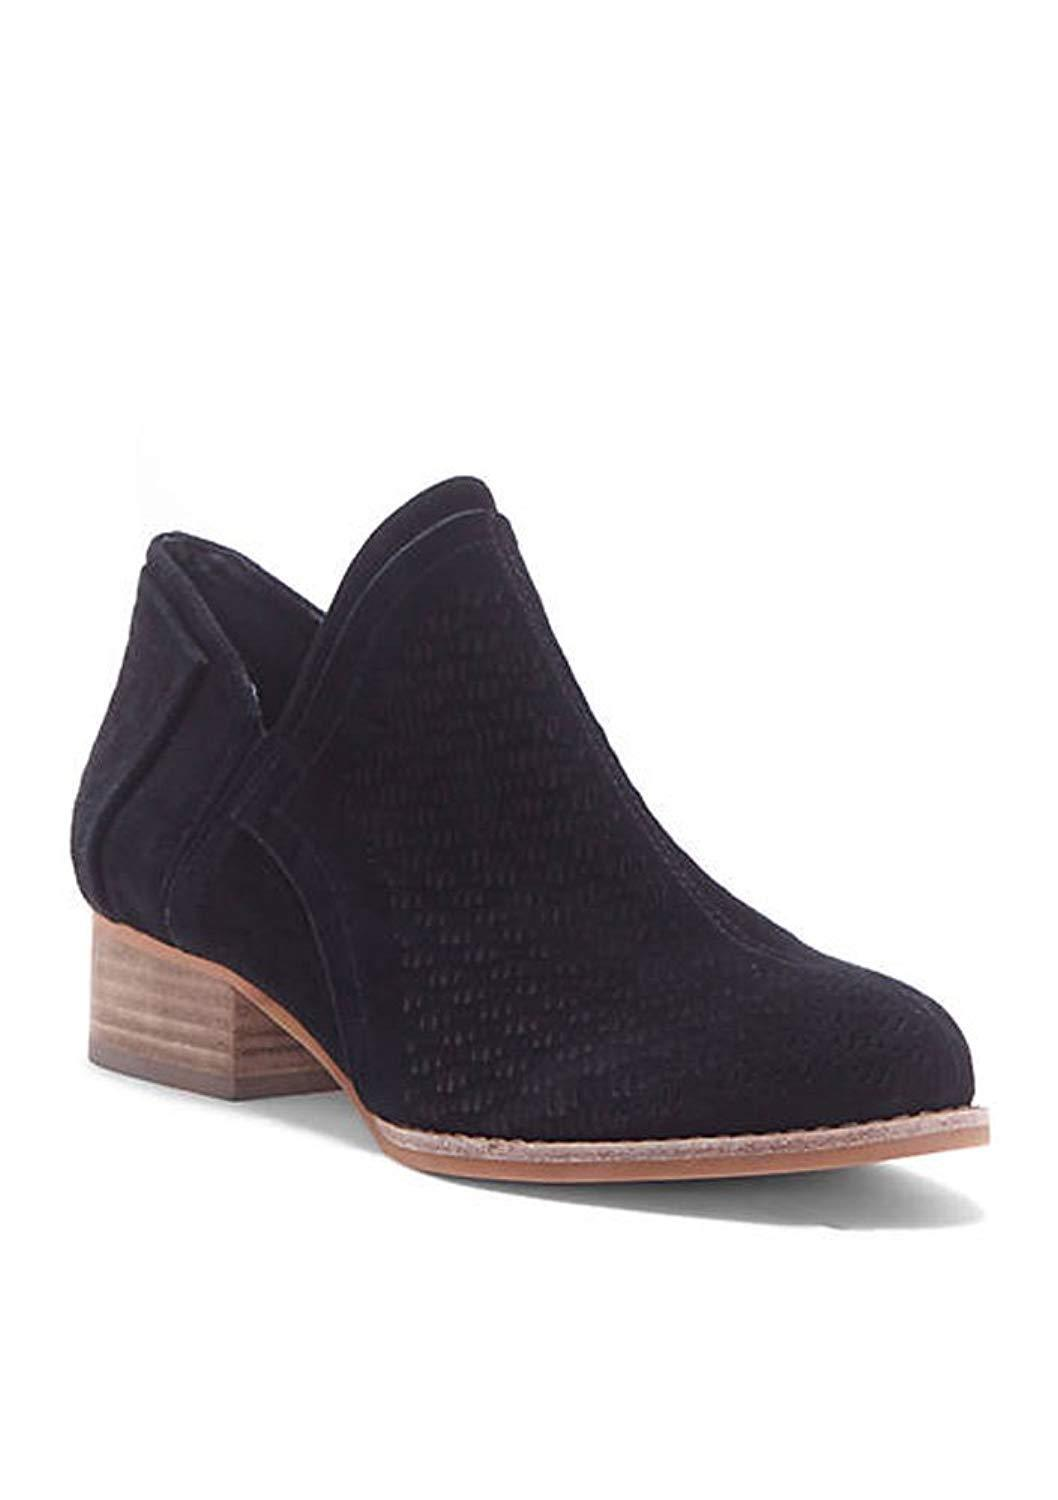 Vince Camuto Women's Clorieea Leather Slip-On Perforated Ankle Booties Black